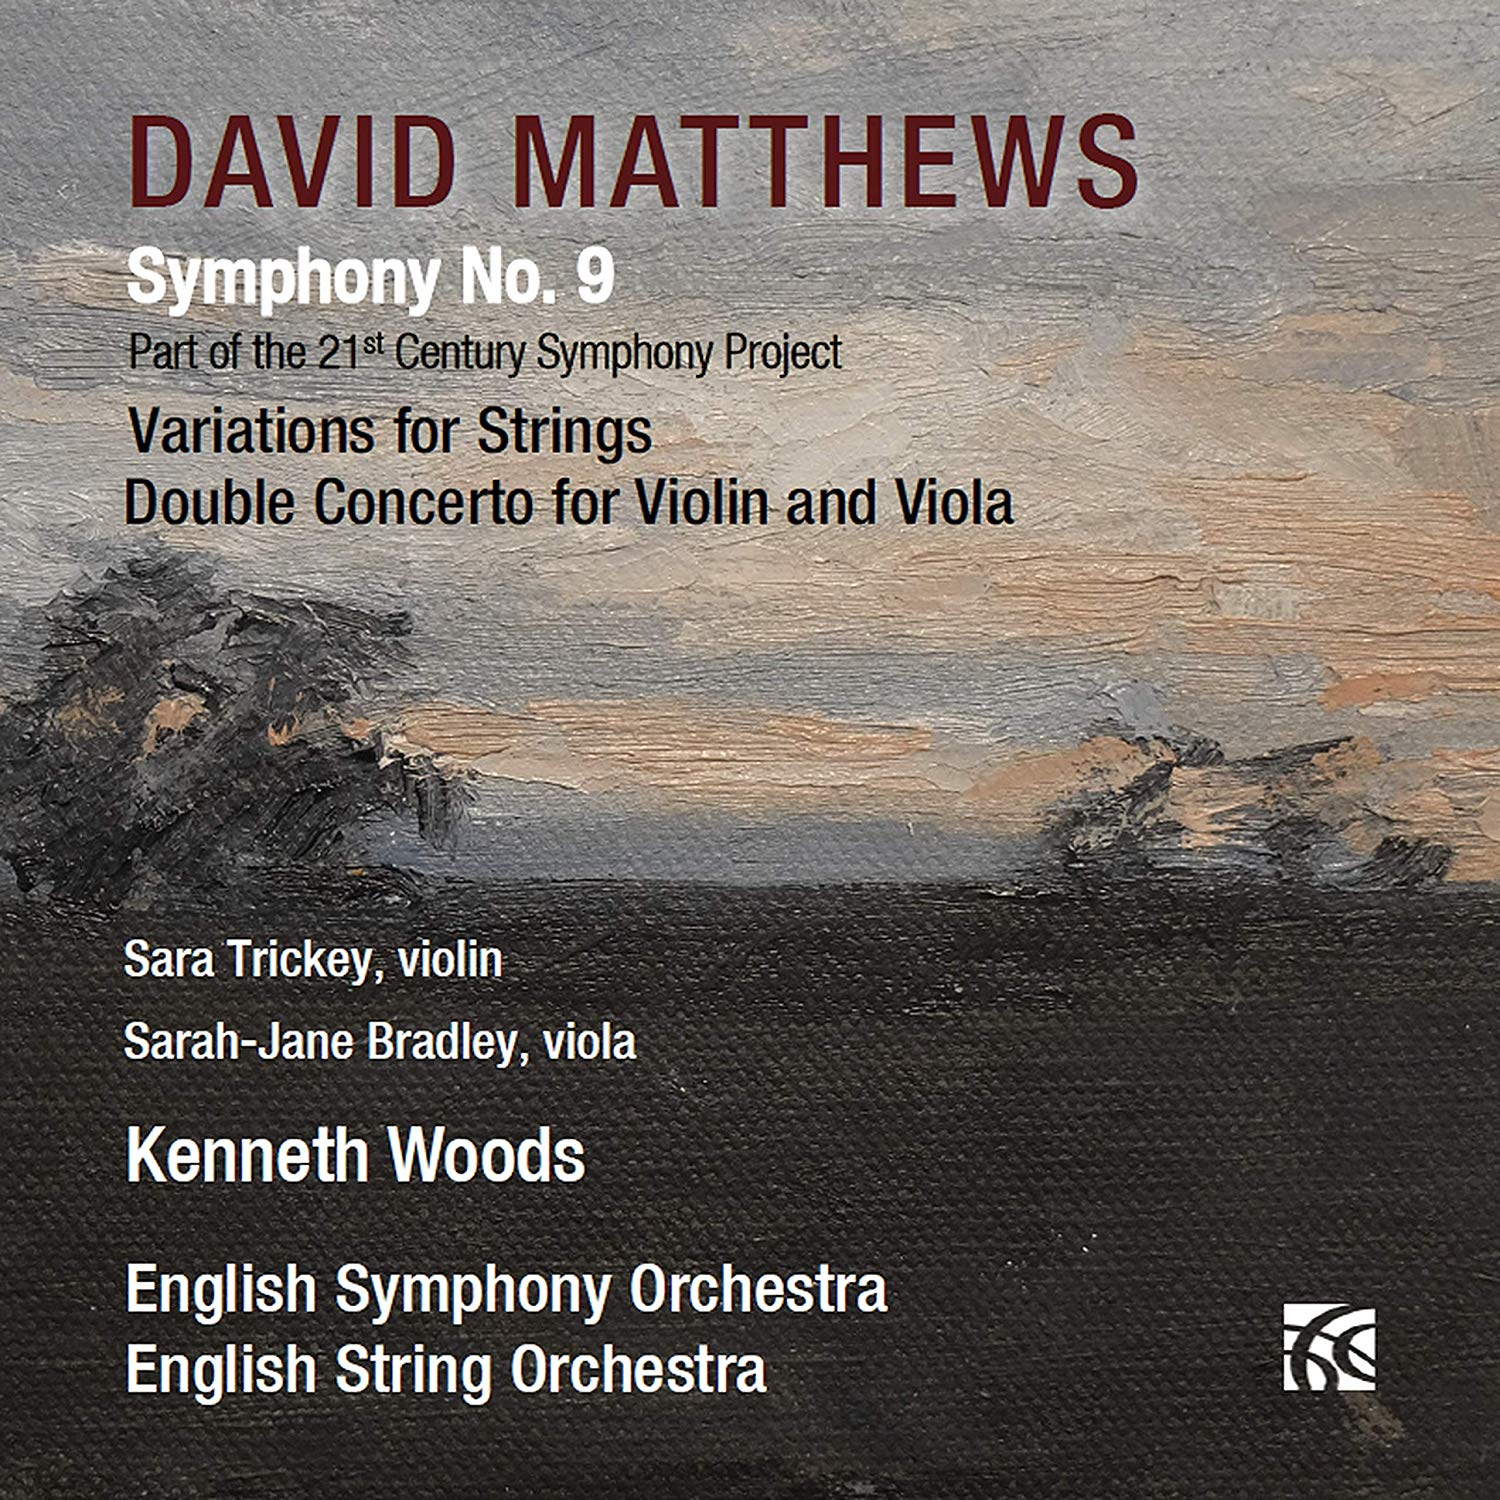 American Record Guide on David Matthews Symphony No. 9